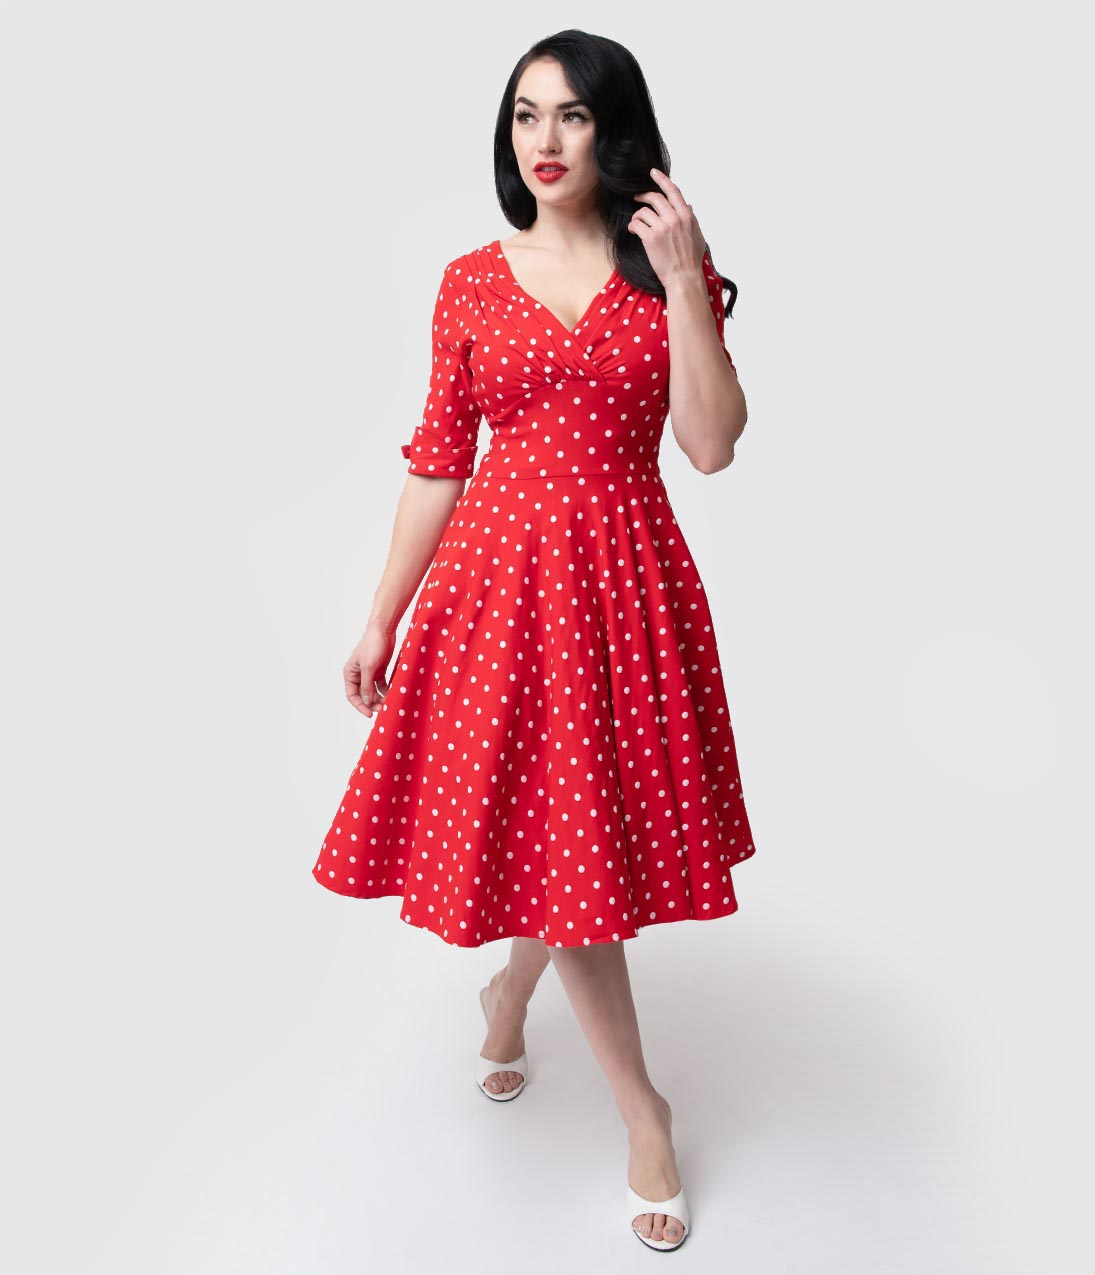 50s Costumes | 50s Halloween Costumes Unique Vintage 1950S Red  White Dot Delores Swing Dress With Sleeves $92.00 AT vintagedancer.com